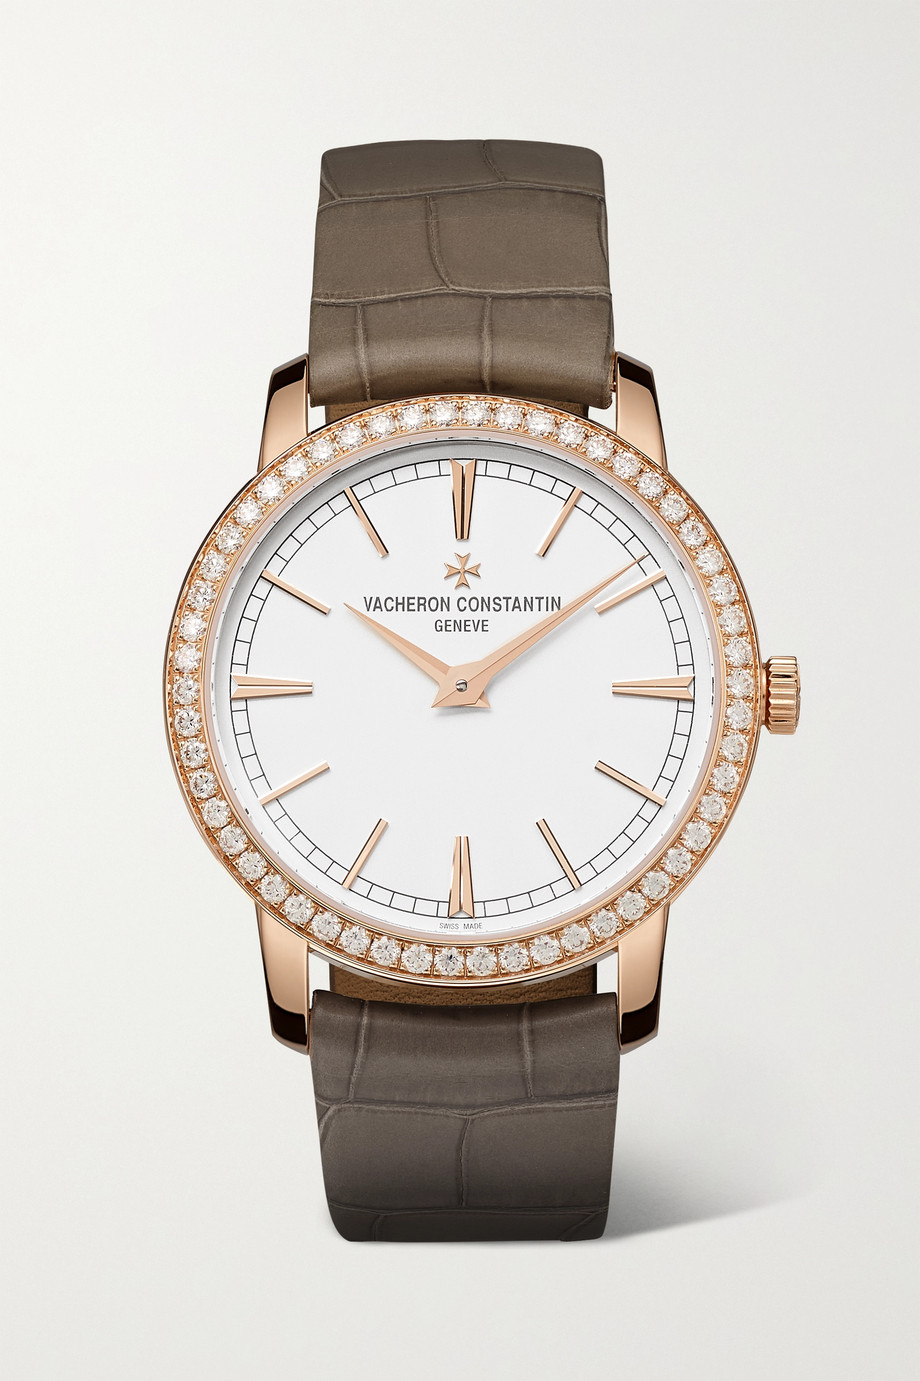 Vacheron Constantin Traditionnelle Hand-Wound 33mm 18-karat pink gold, alligator and diamond watch